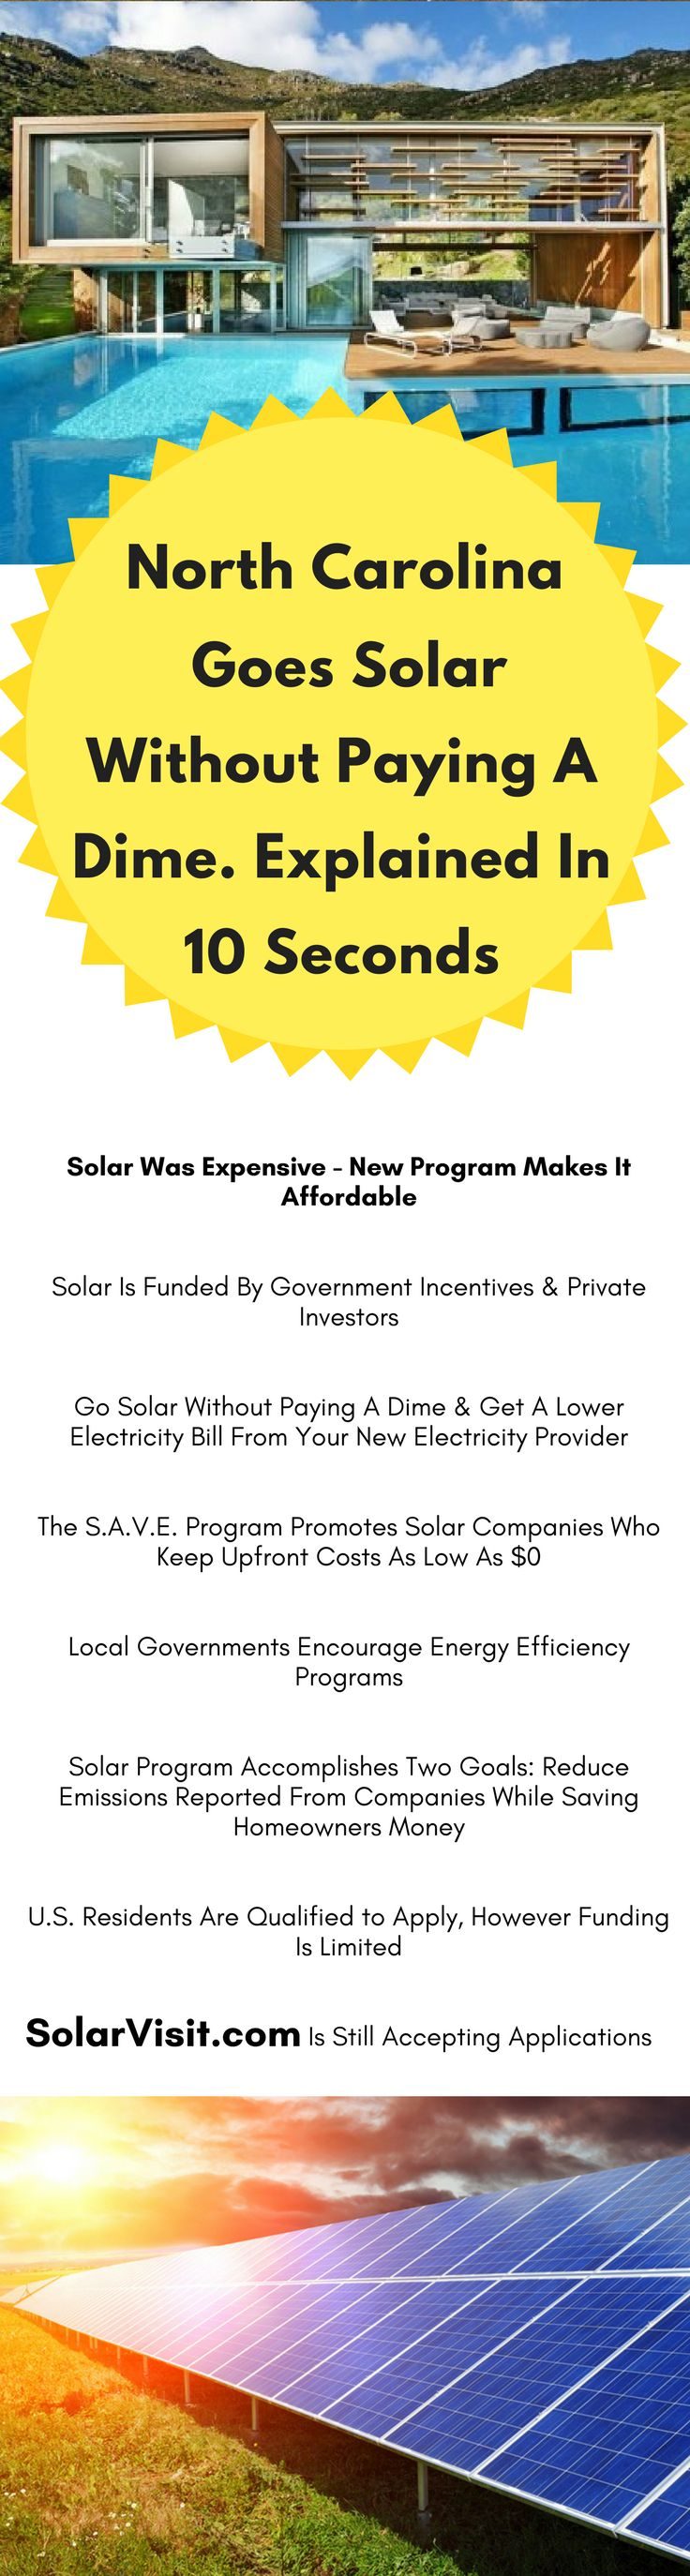 North Carolina is one of the best places to go solar!